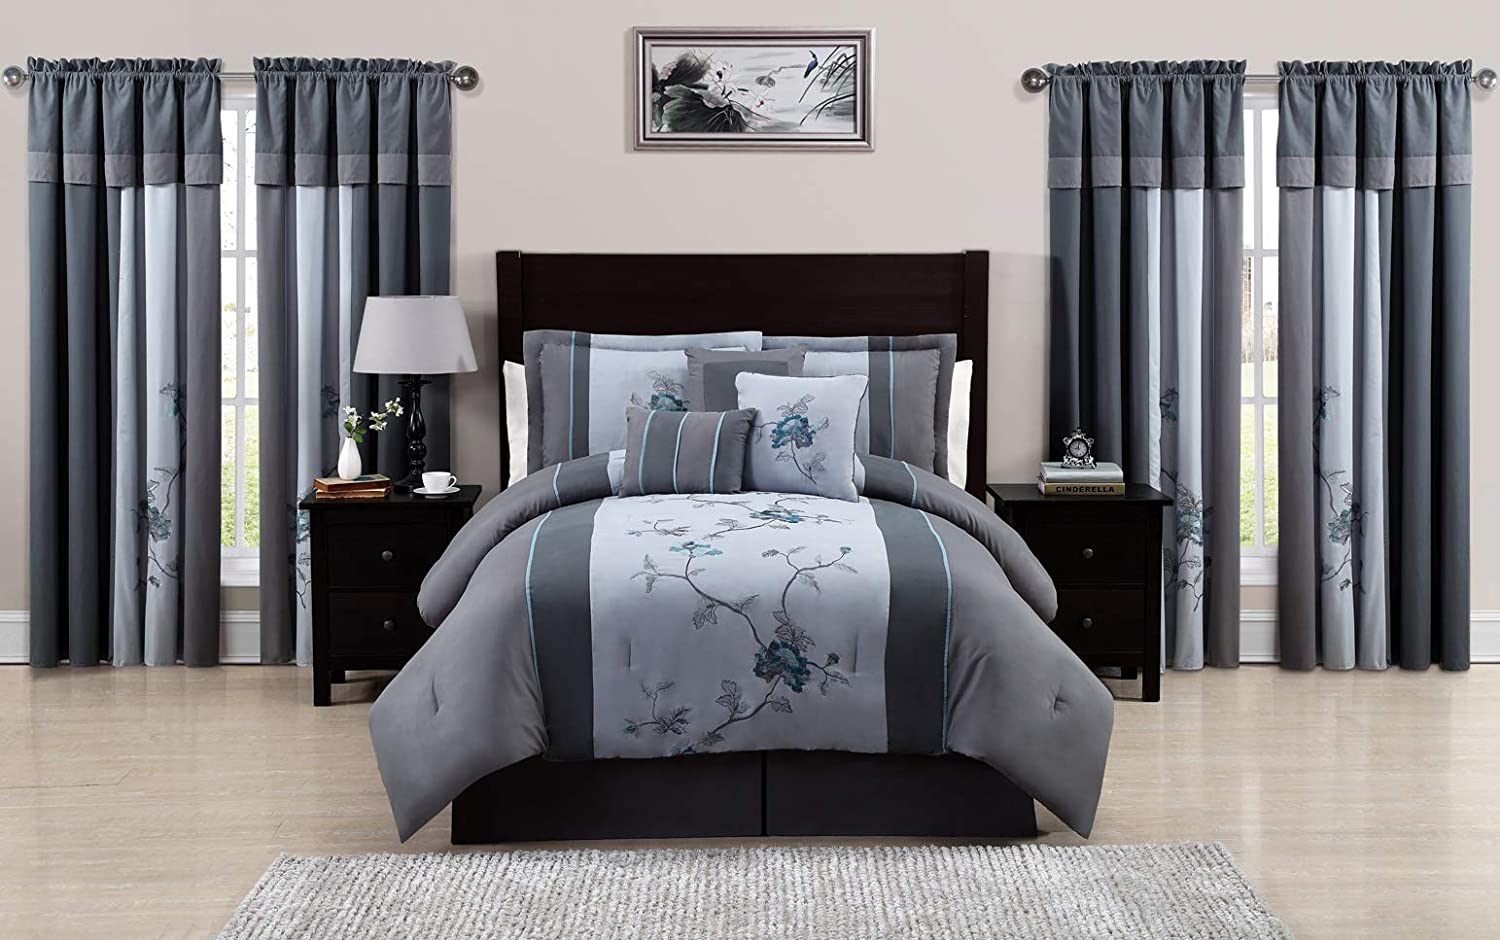 Tulsa Mall Indianapolis Mall 7-Pieces Gray Blue Embroidered Floral Bed Set in Comforter a Bag